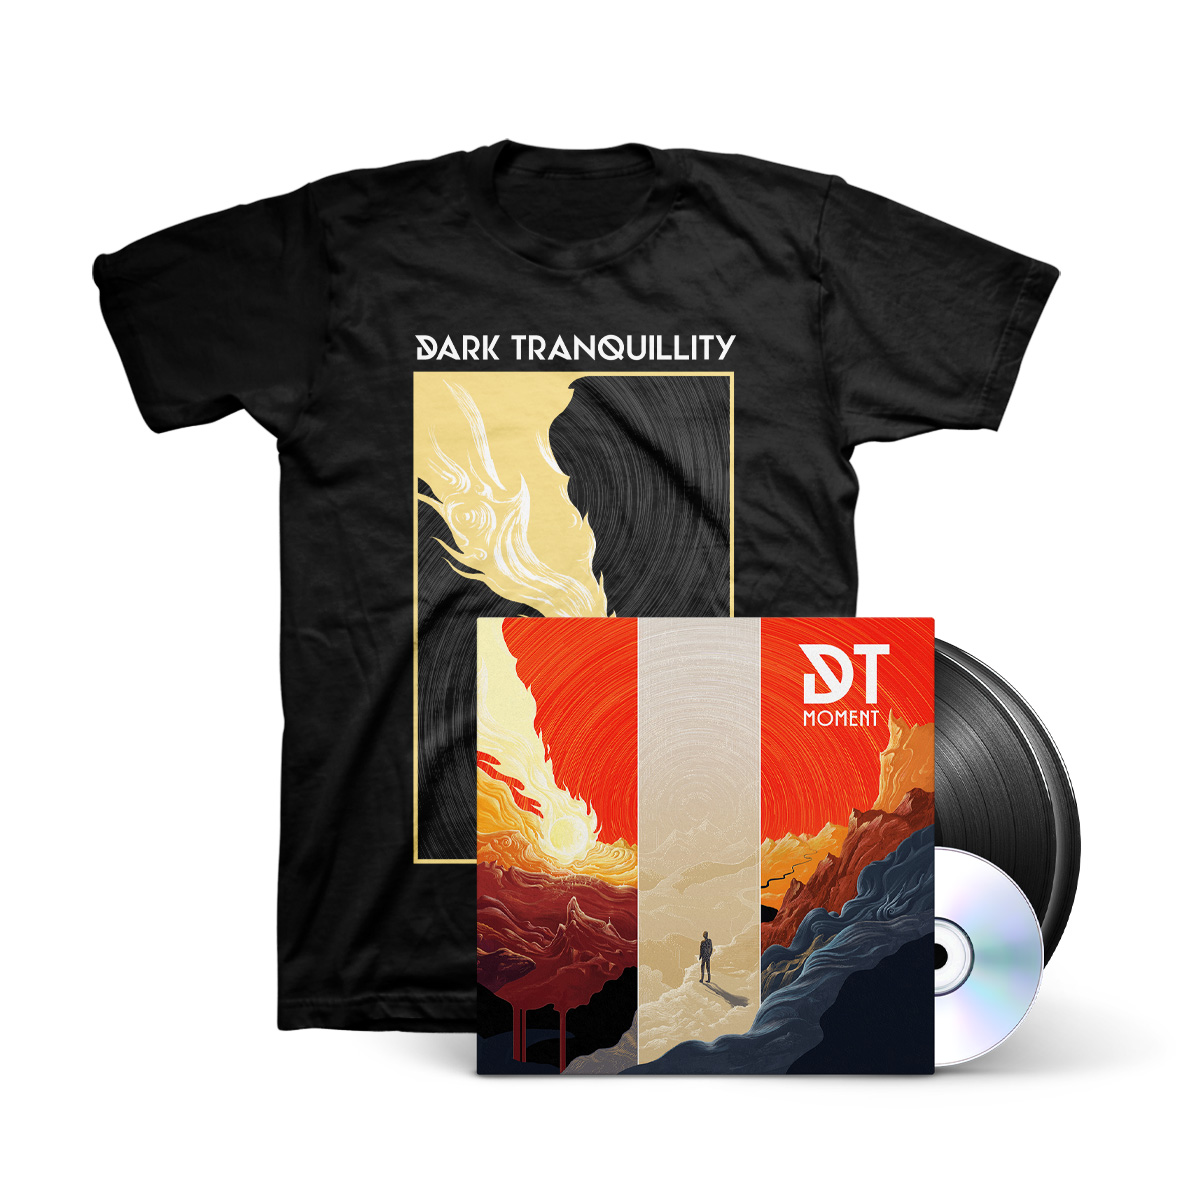 Dark Tranquillity - Moment Black Vinyl 2LP+CD + Black T-Shirt